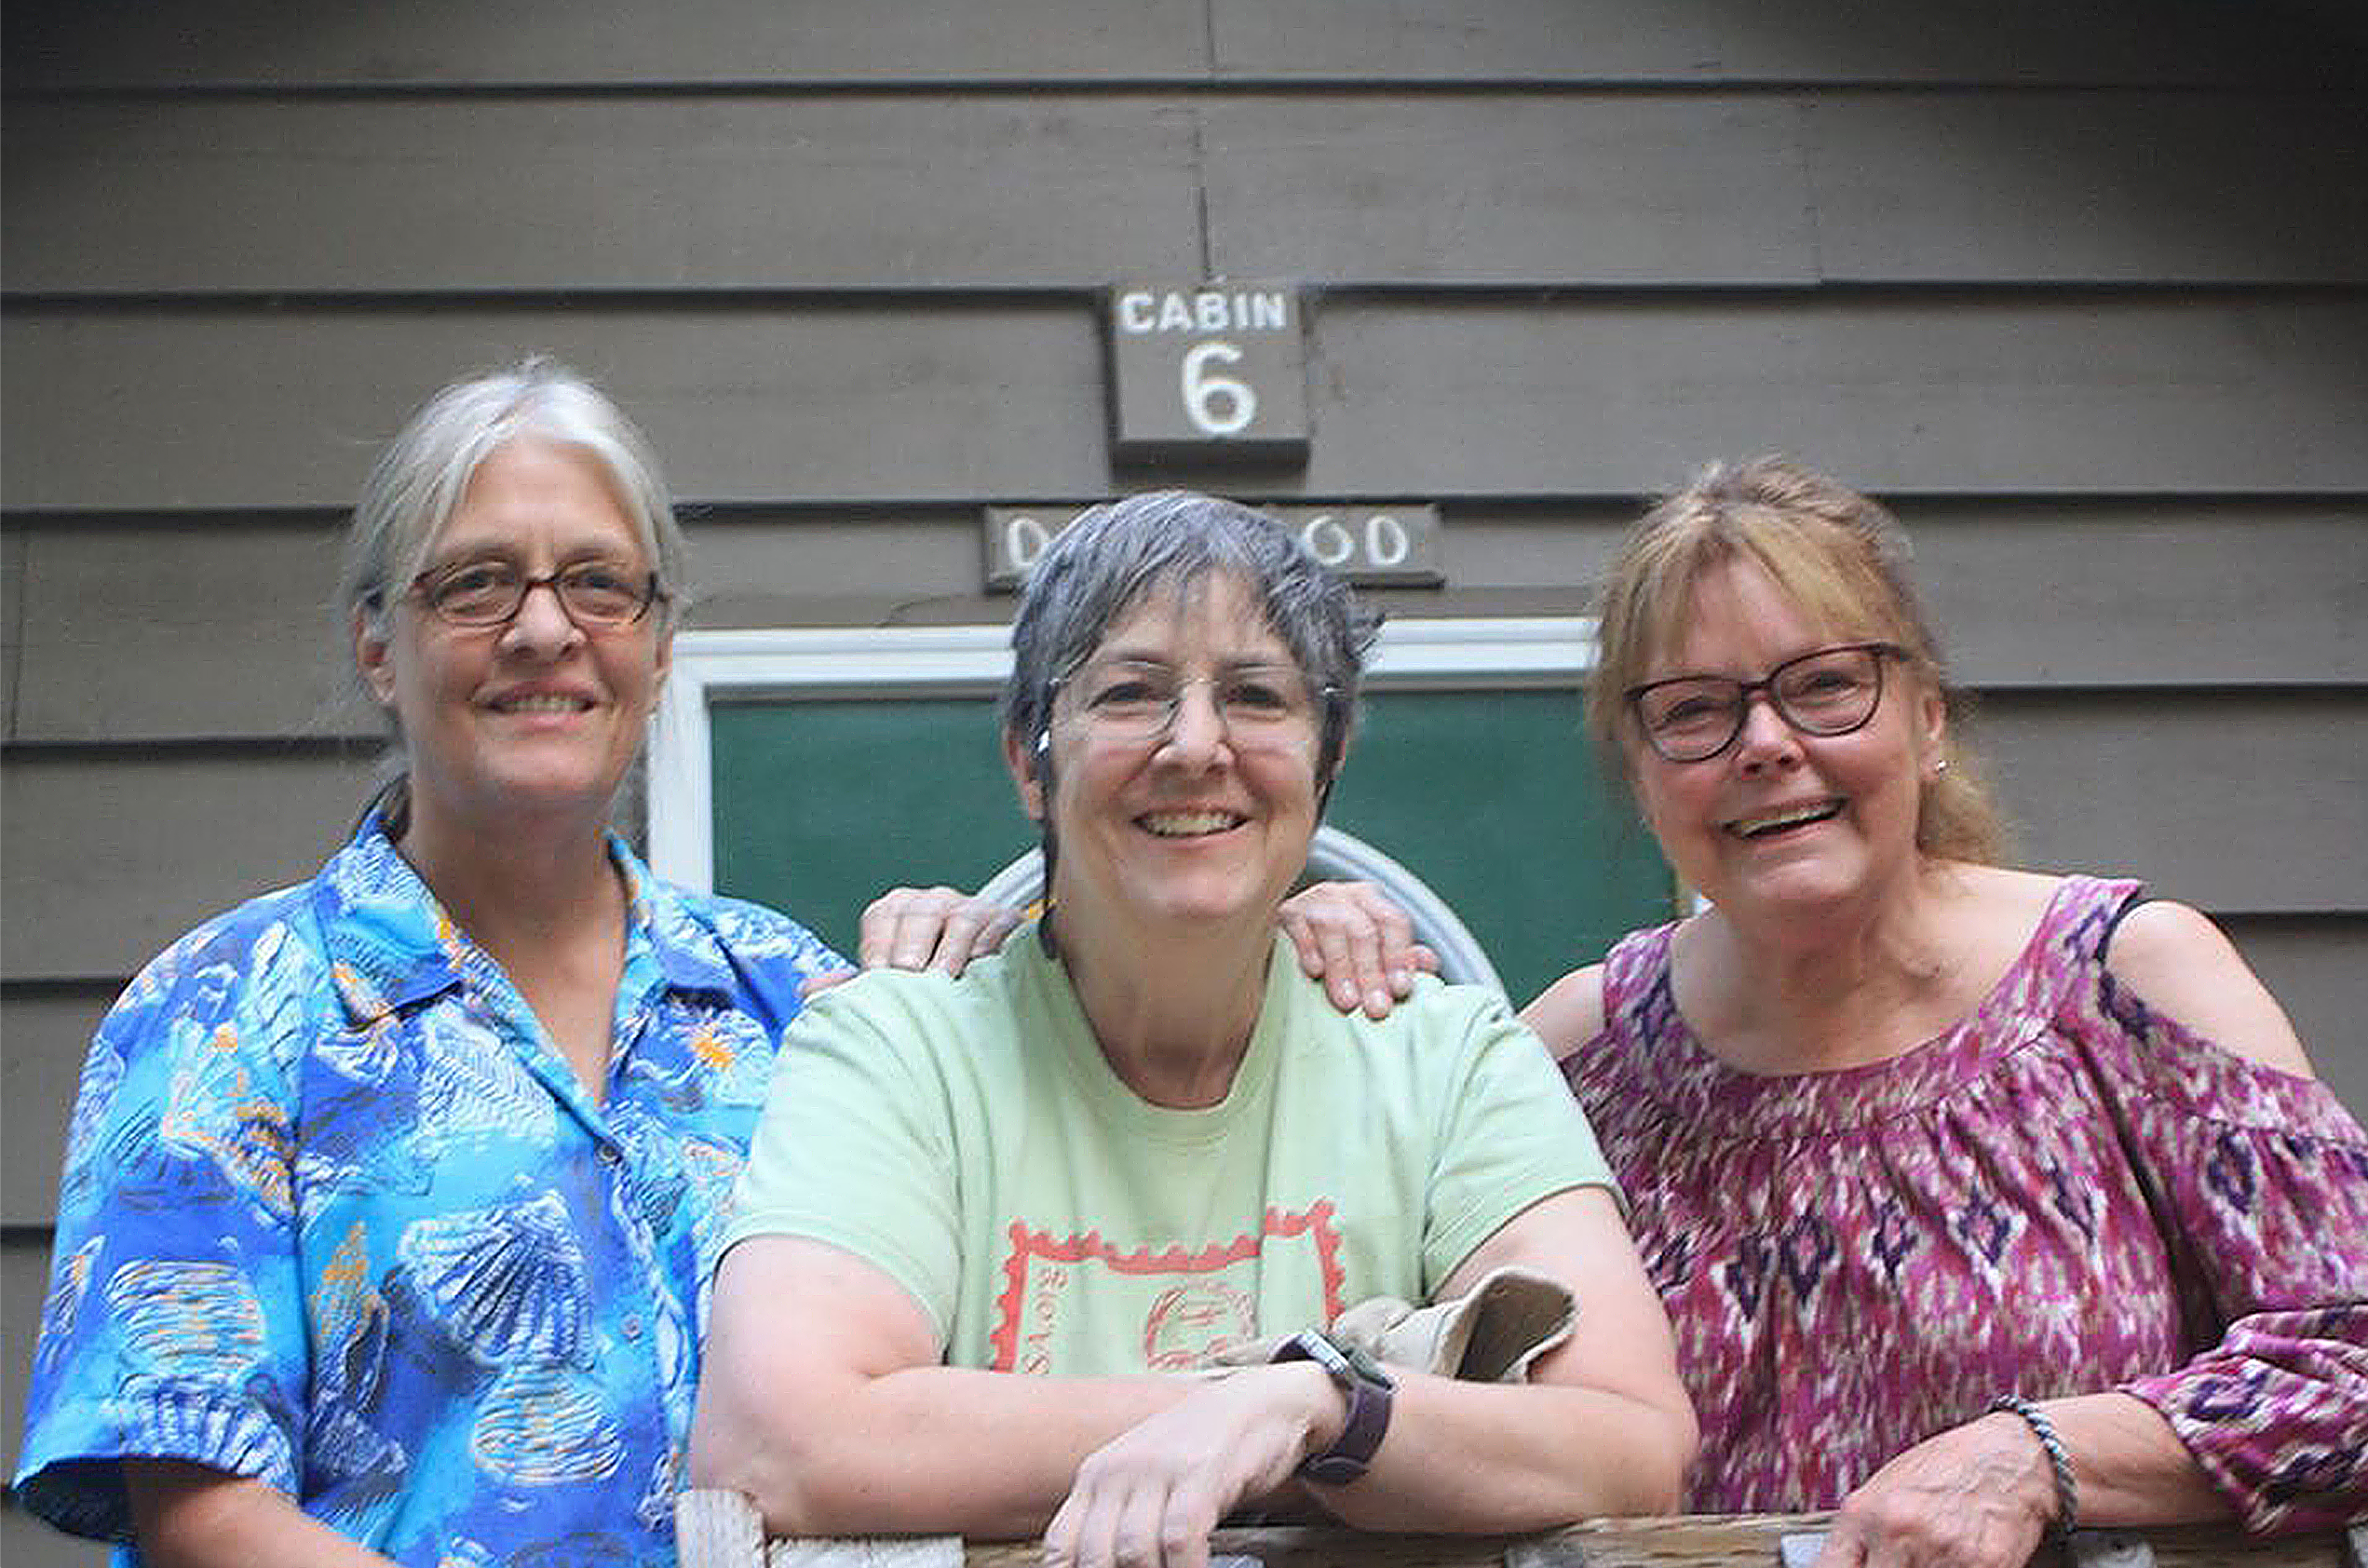 Roommates at Suttle Lake Camp Sheri Tangen and Renda Greene and Sue Quast